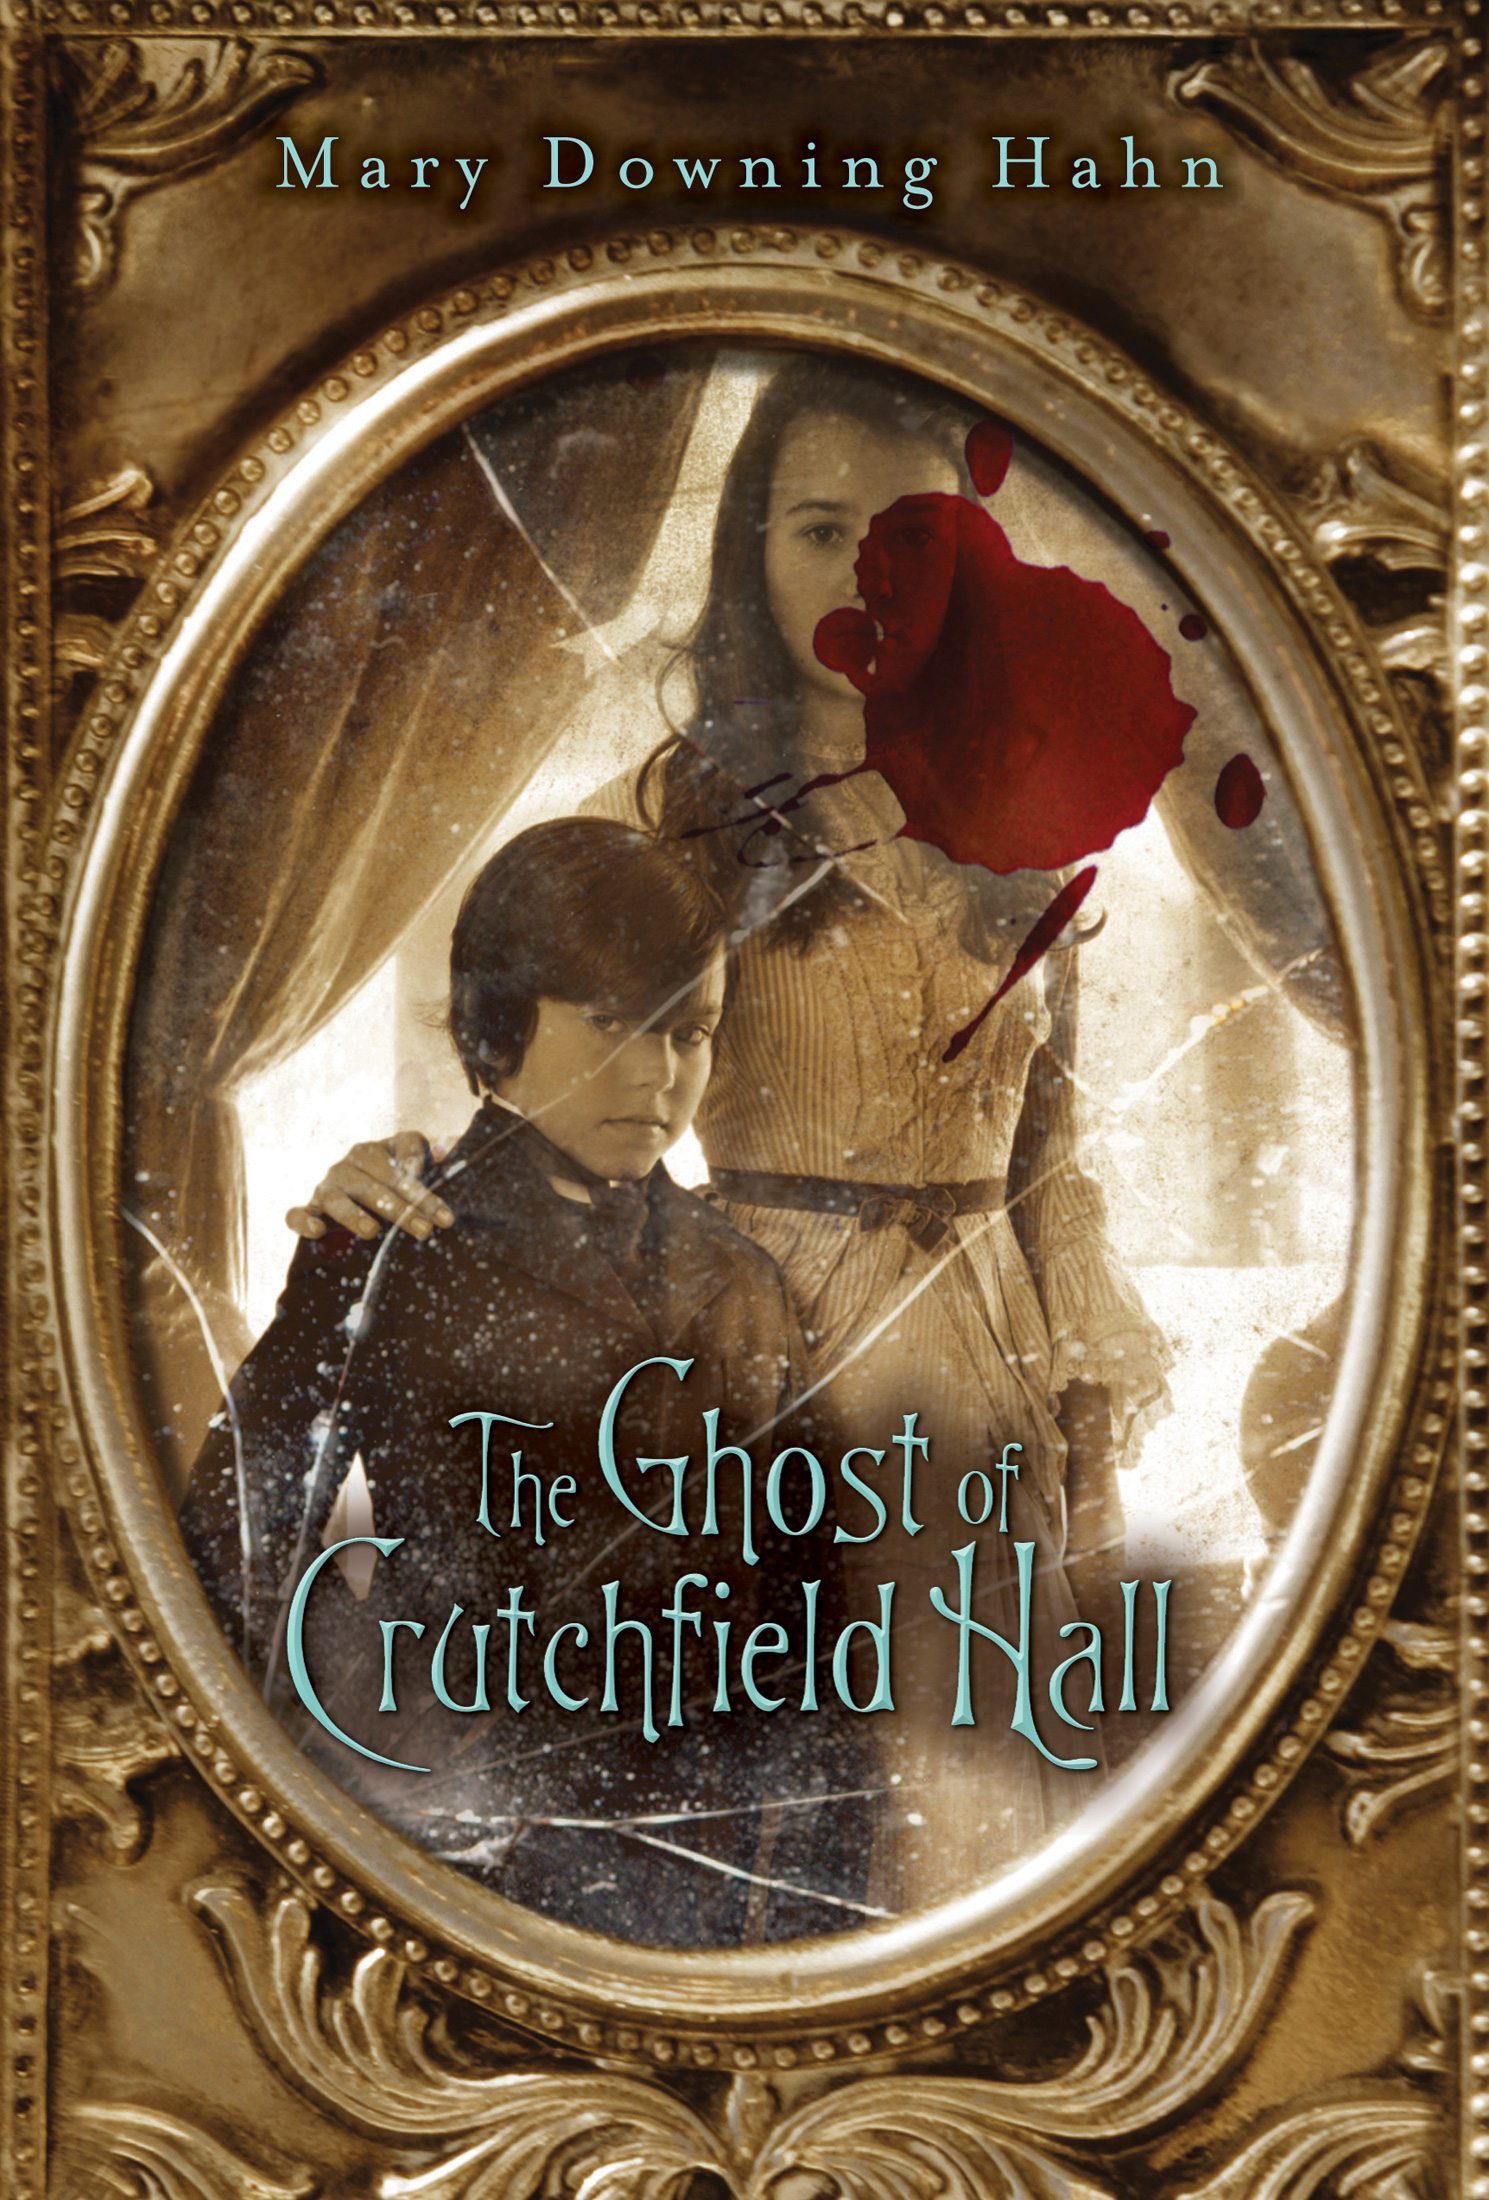 The Ghost of Crutchfield Hall-9780547385600